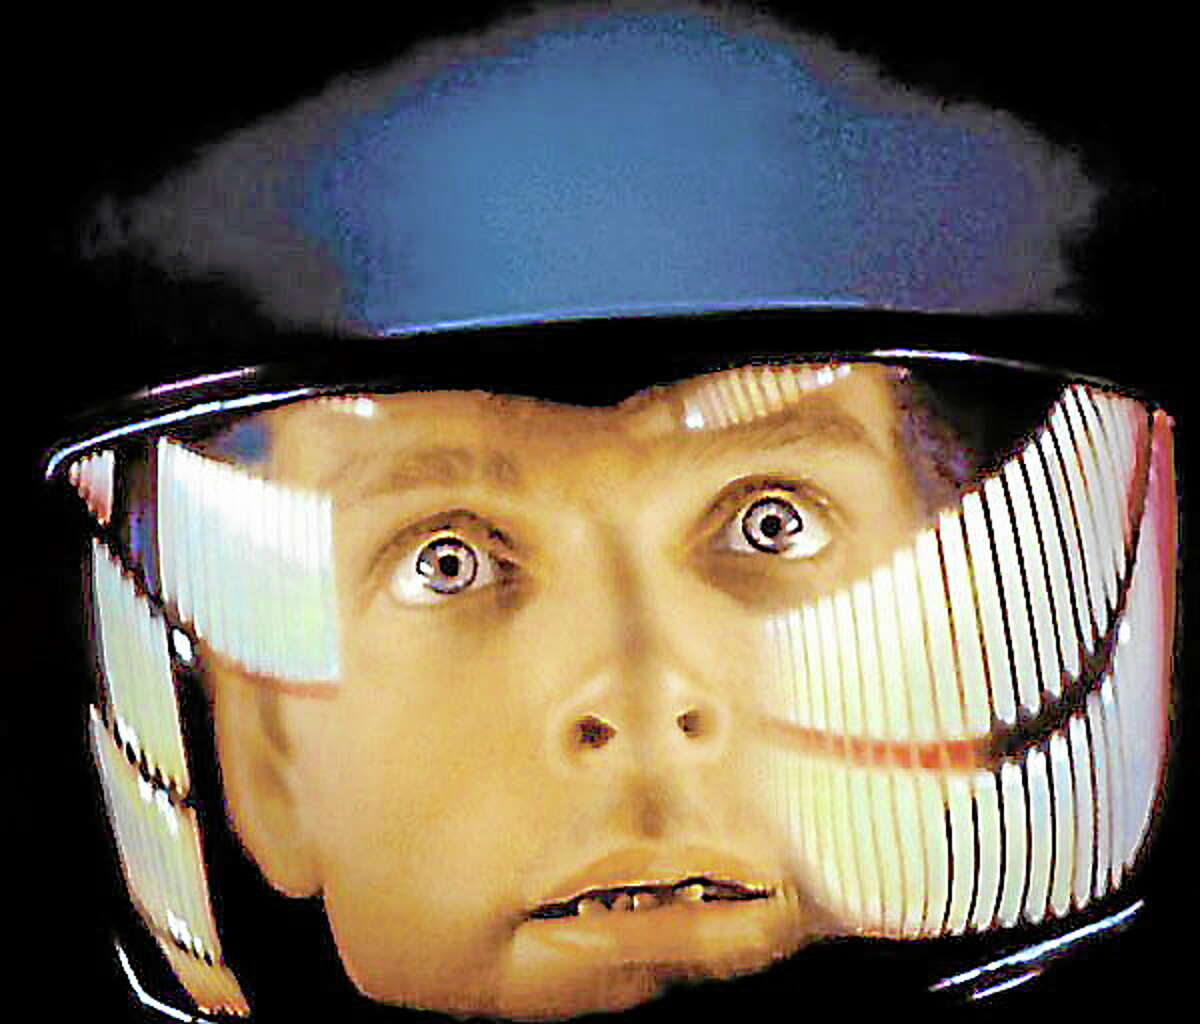 Keir Dullea as Dr. David Bowman in 2001: A SPACE ODYSSEY, in a photo contributed by Lyric Hall.